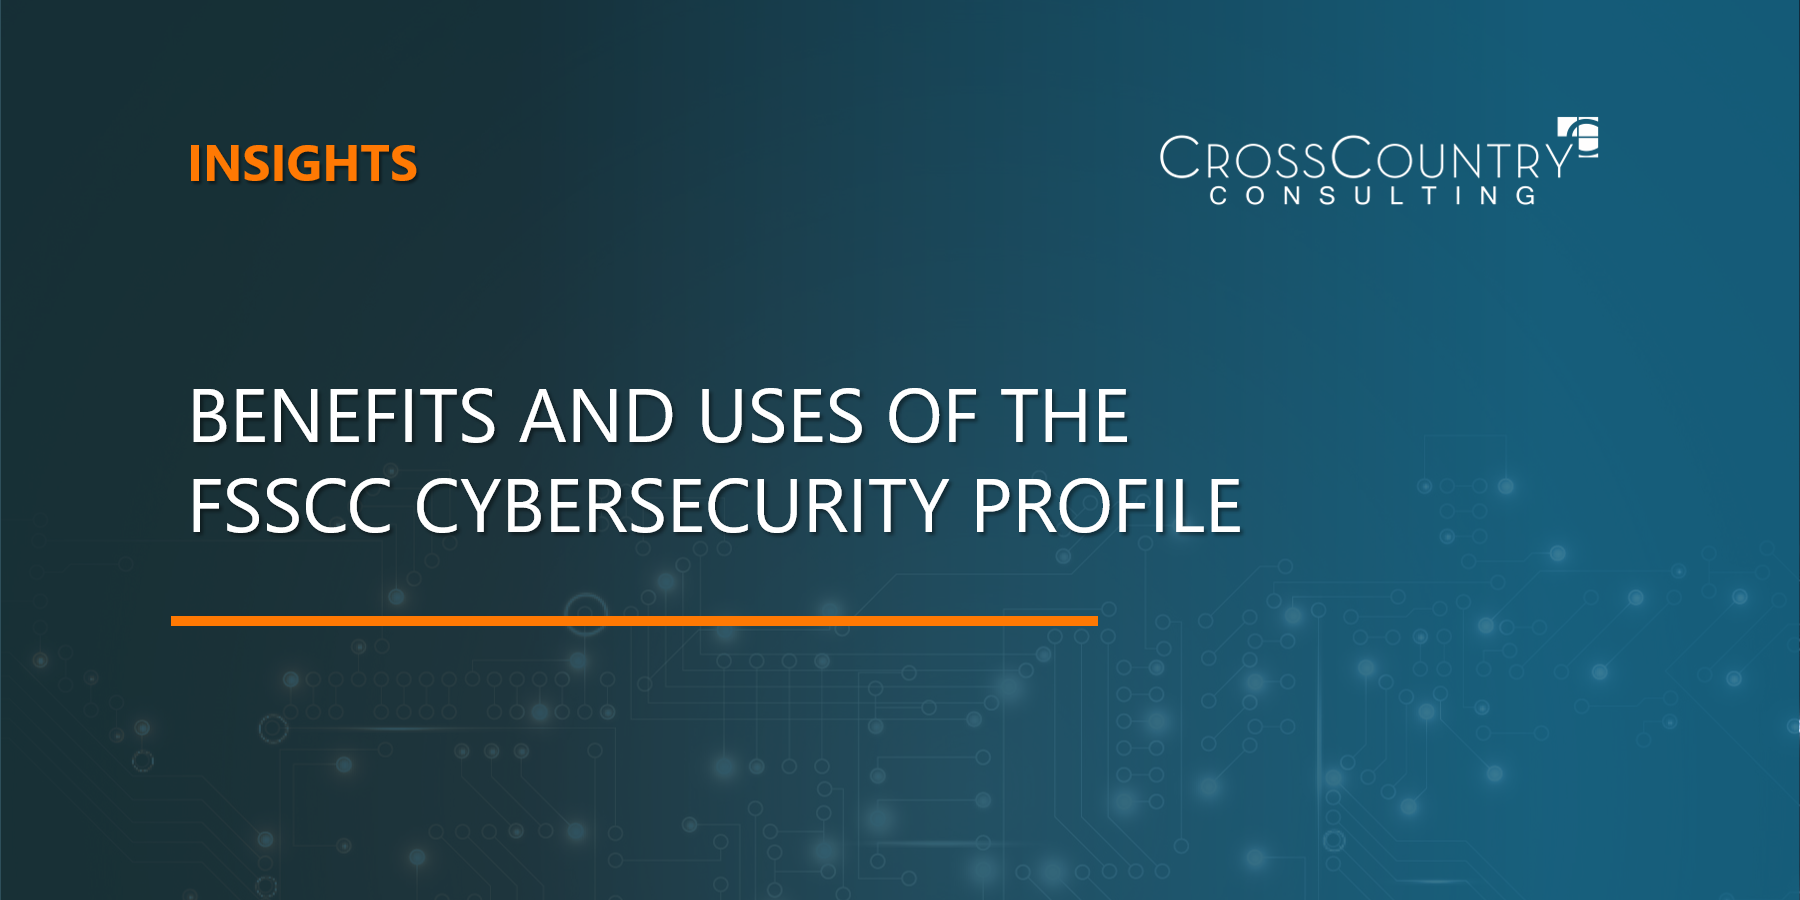 Benefits and Uses of the FSSCC Cybersecurity Profile